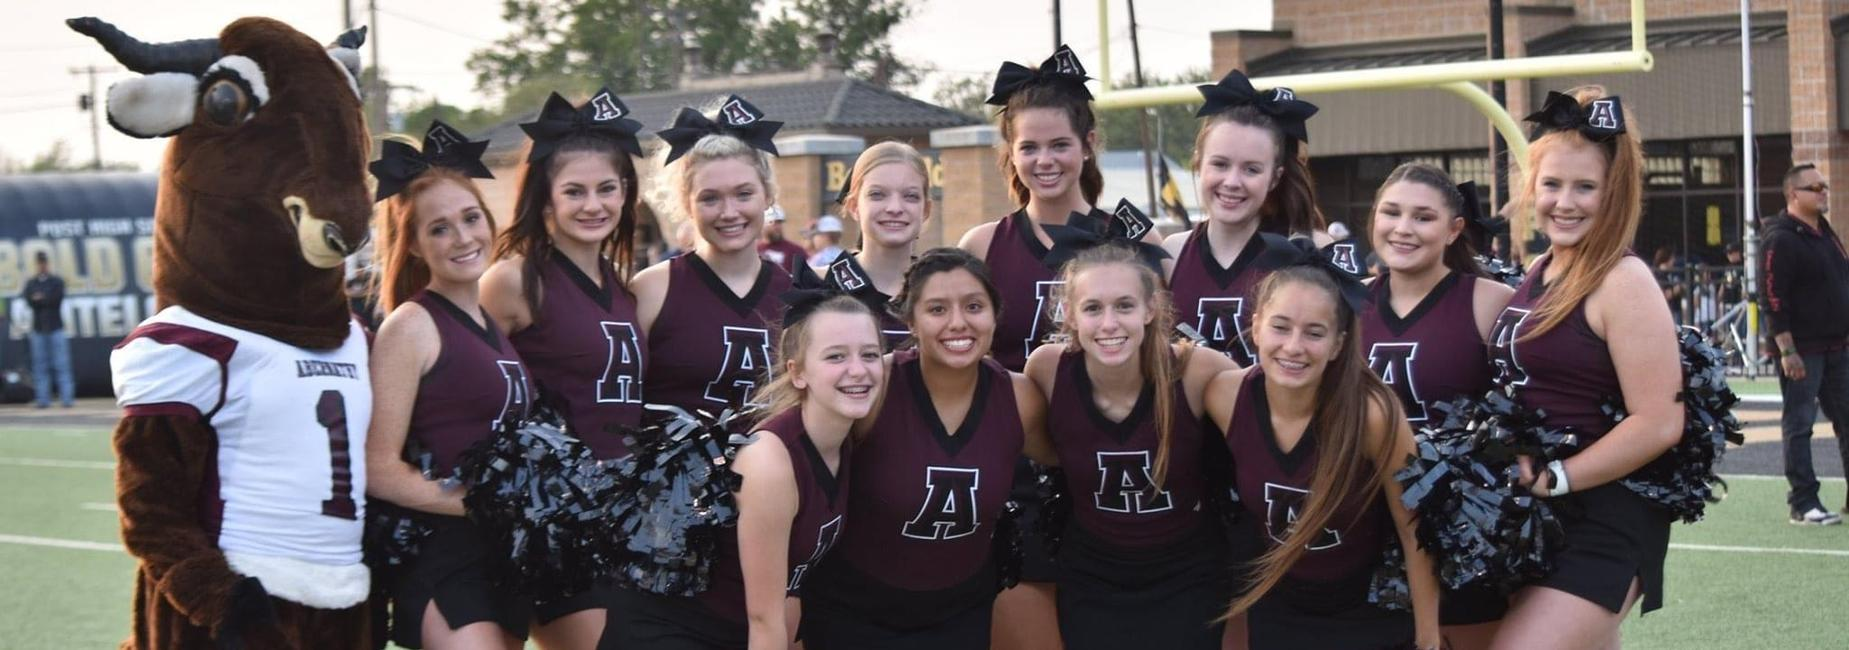 Cheerleaders pose with mascot before football game